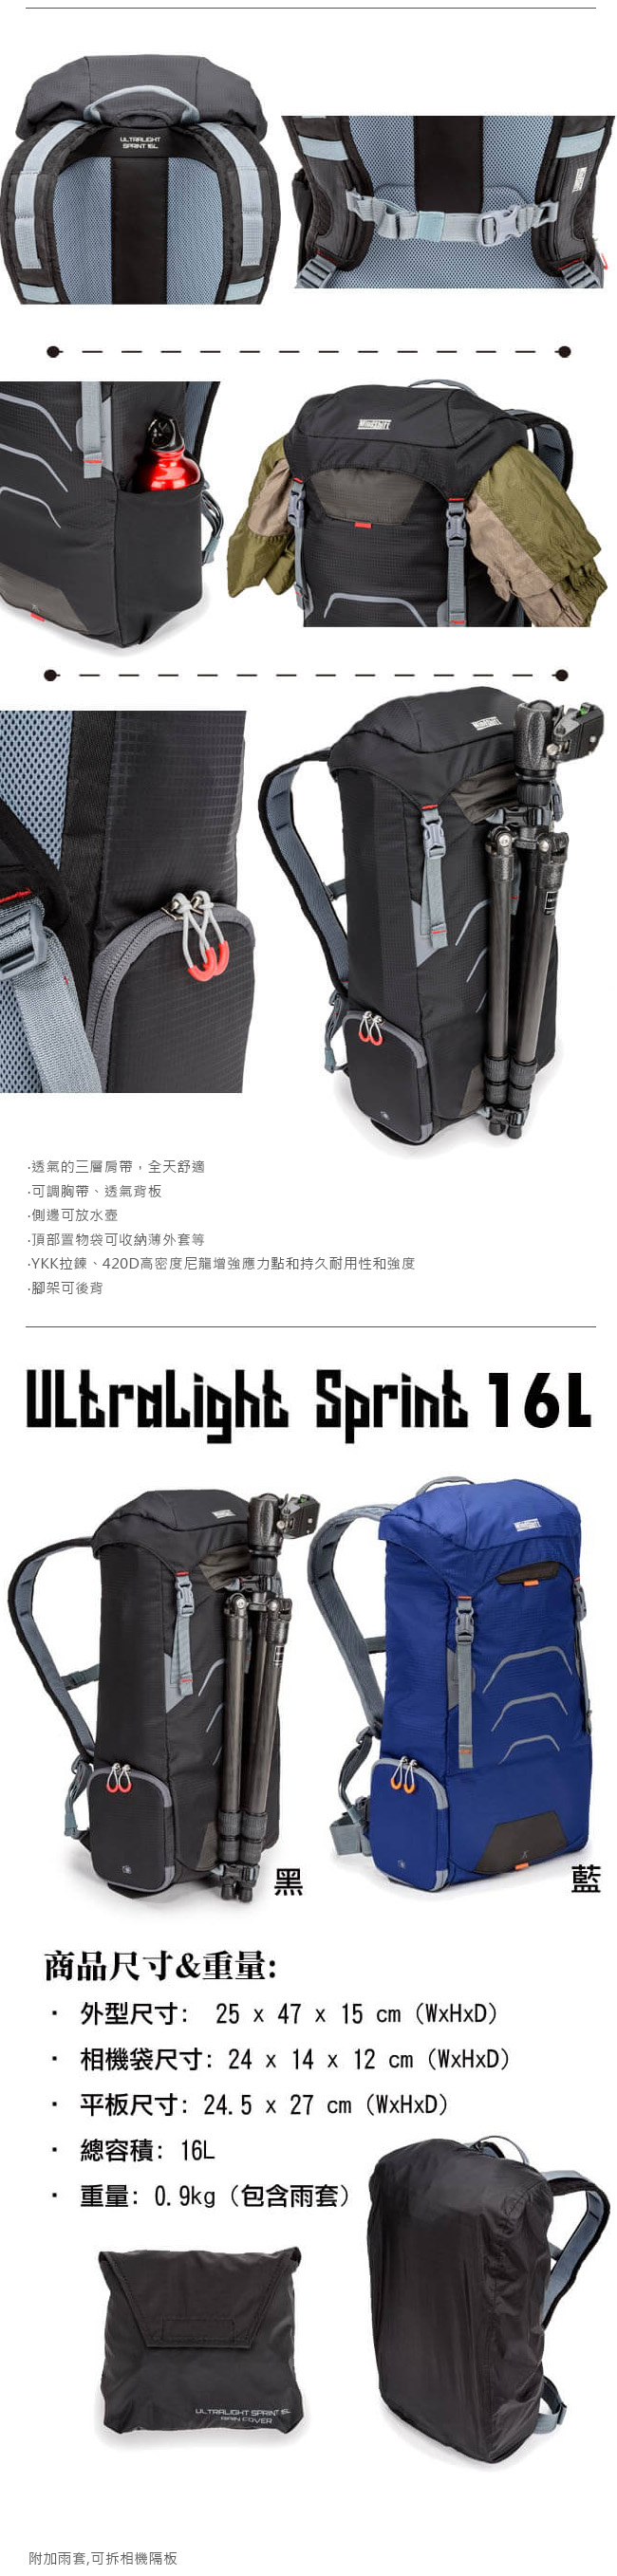 �iMindShift Gear�Ҽw�h�jMS301 UltraLight�B�ʥ𶢾���]16L(�ǥ���)-�ӫ~²����4